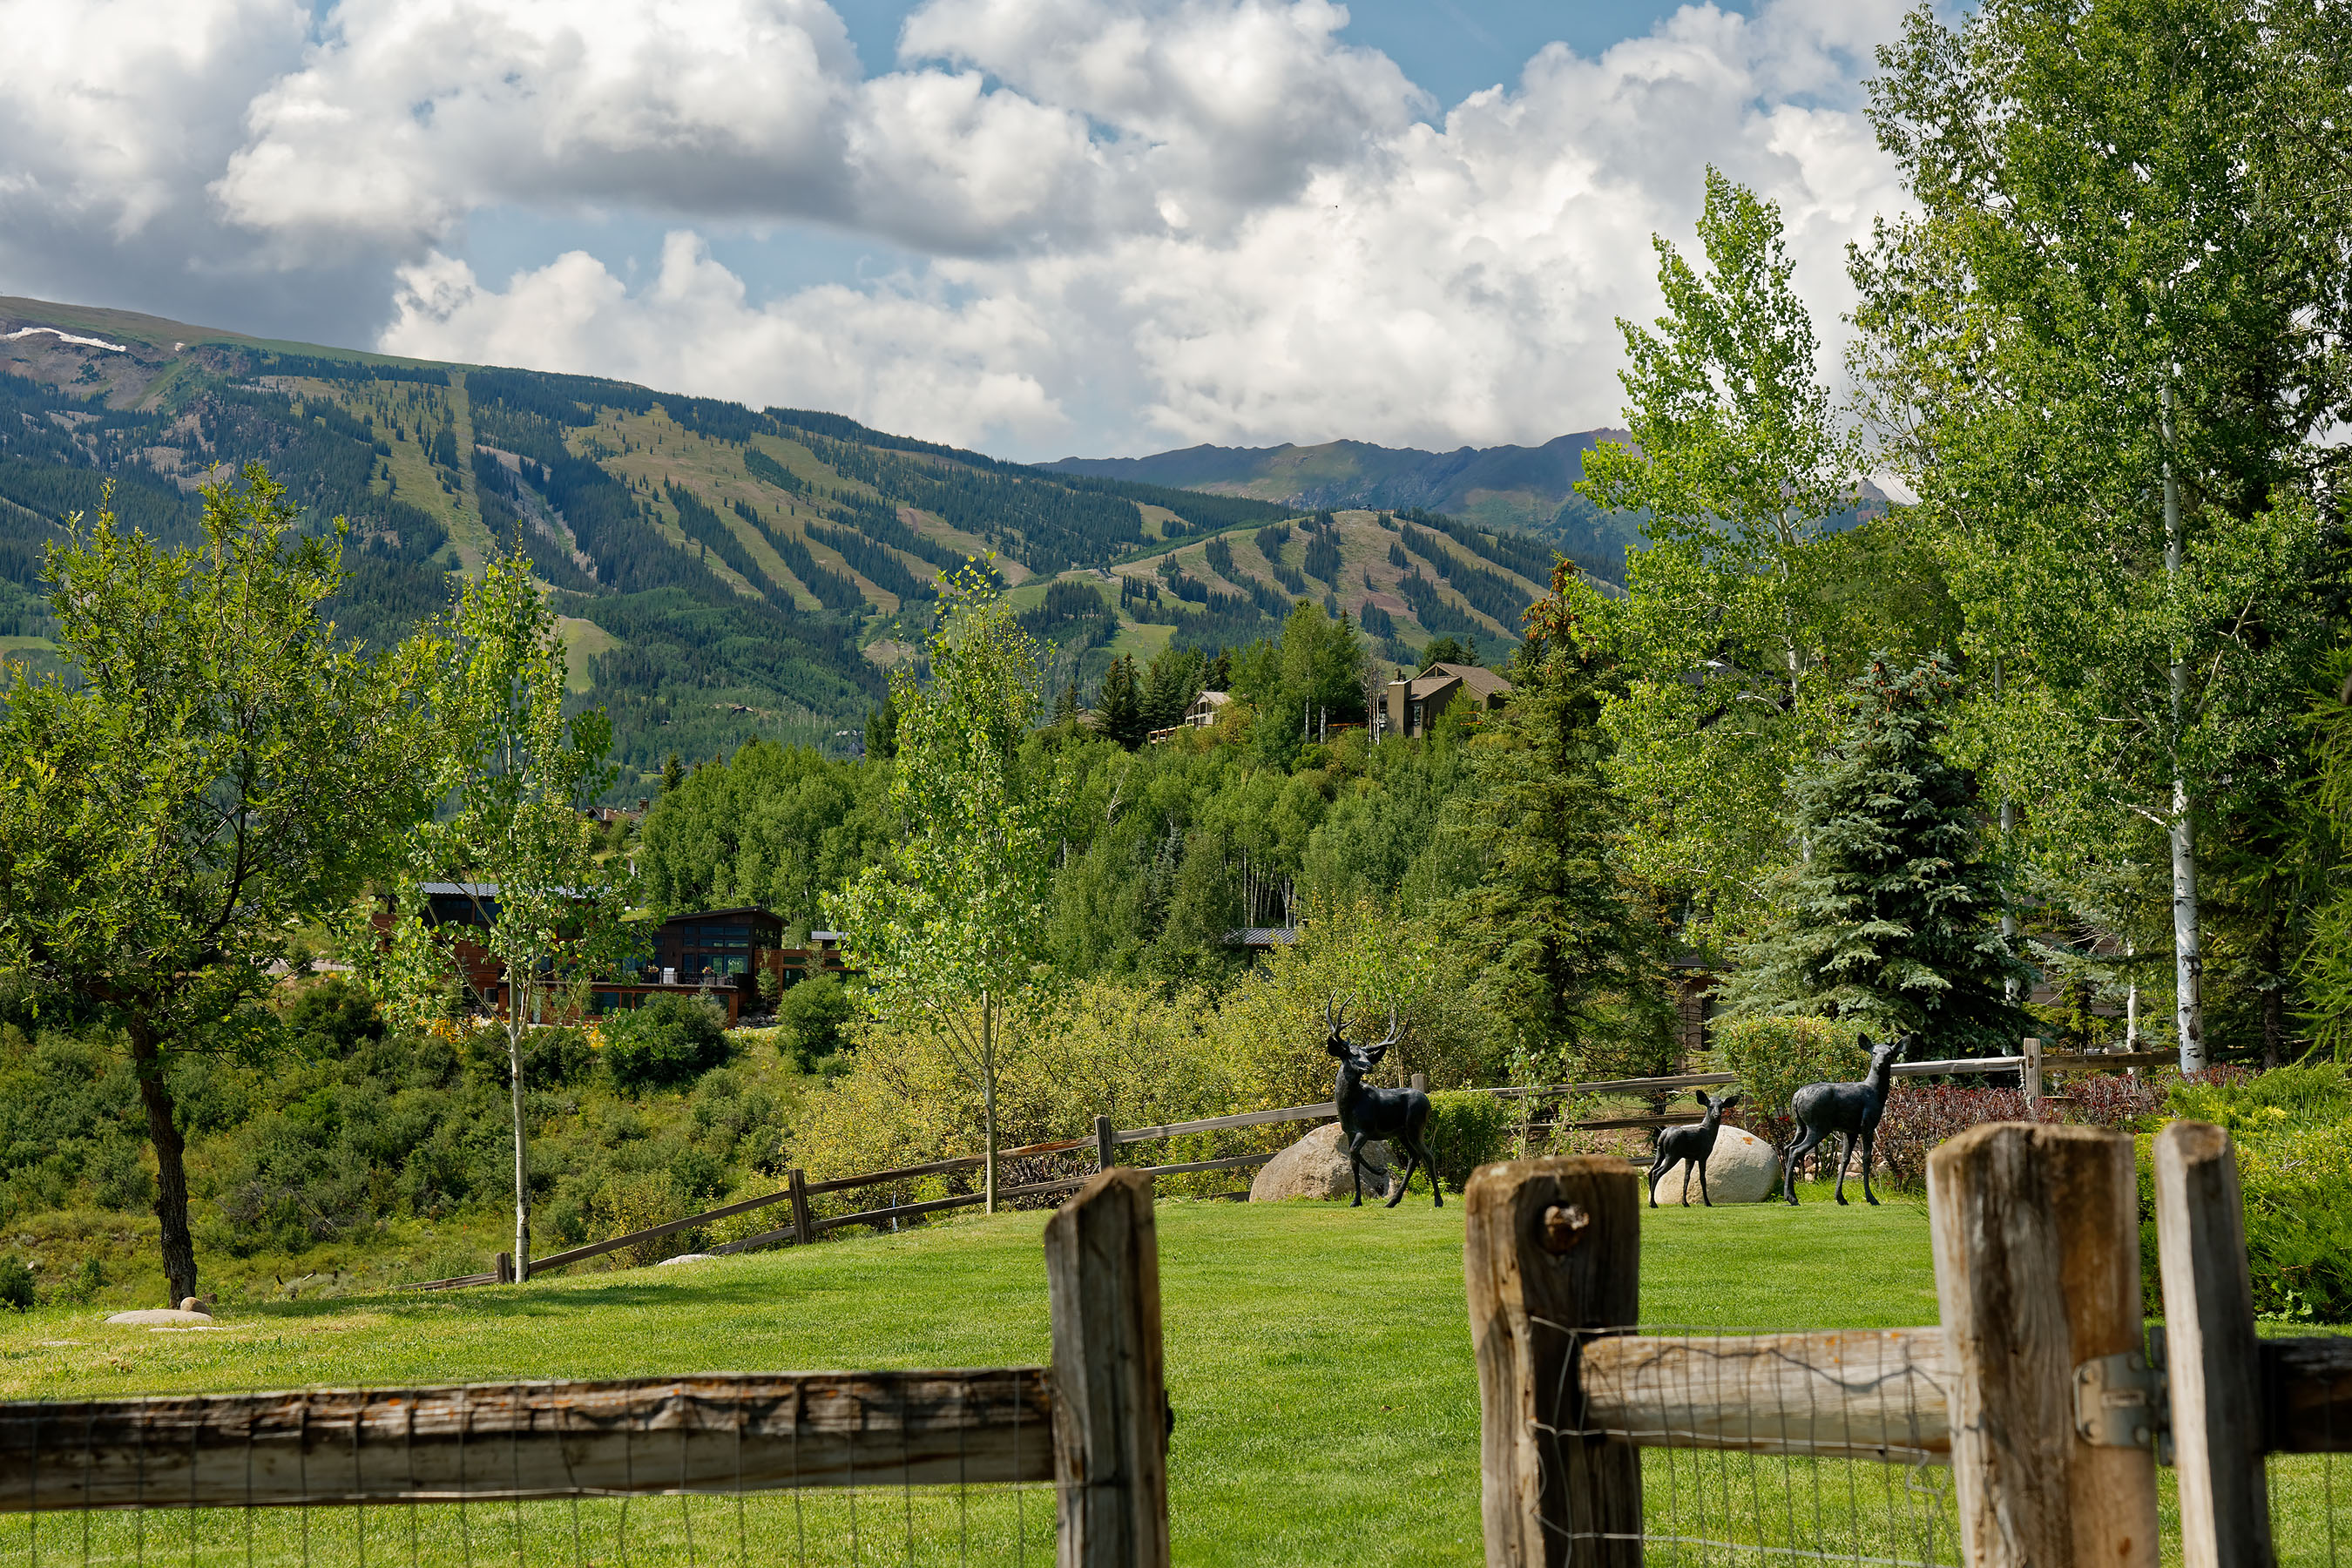 Villa per Vendita alle ore Wildoak Unit One Lot 2 446 Oak Ridge Road Snowmass Village, Colorado, 81615 Stati Uniti